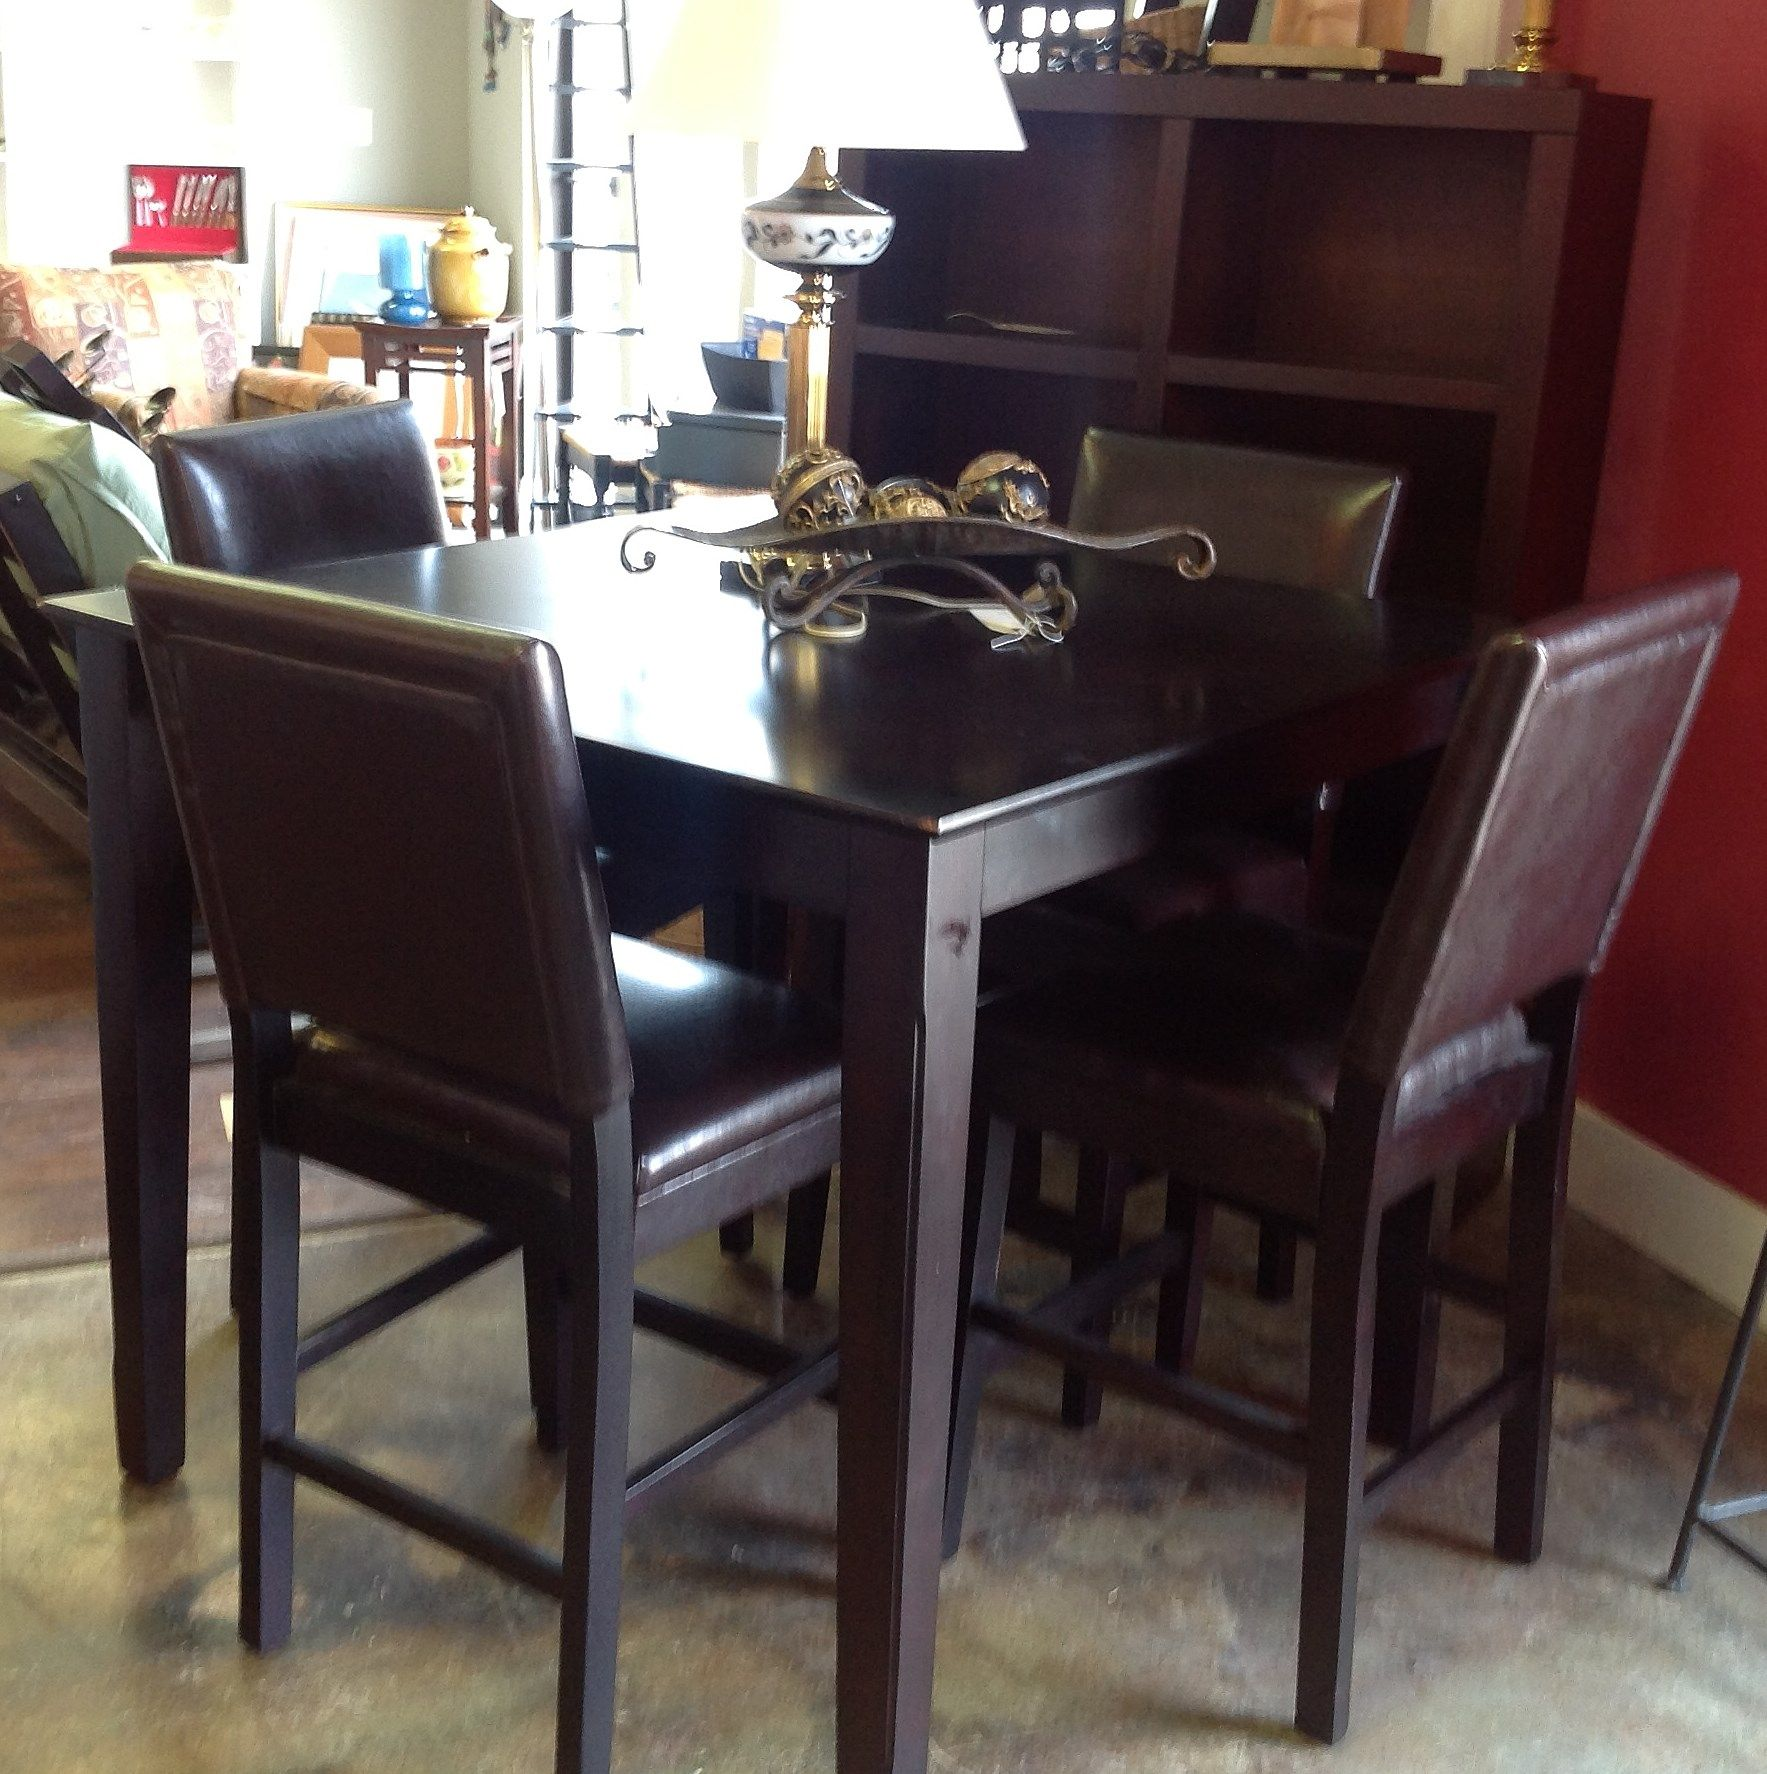 High Top Table With 4 Leather Chairs High Top Tables High Top Table Kitchen Pub Table Sets